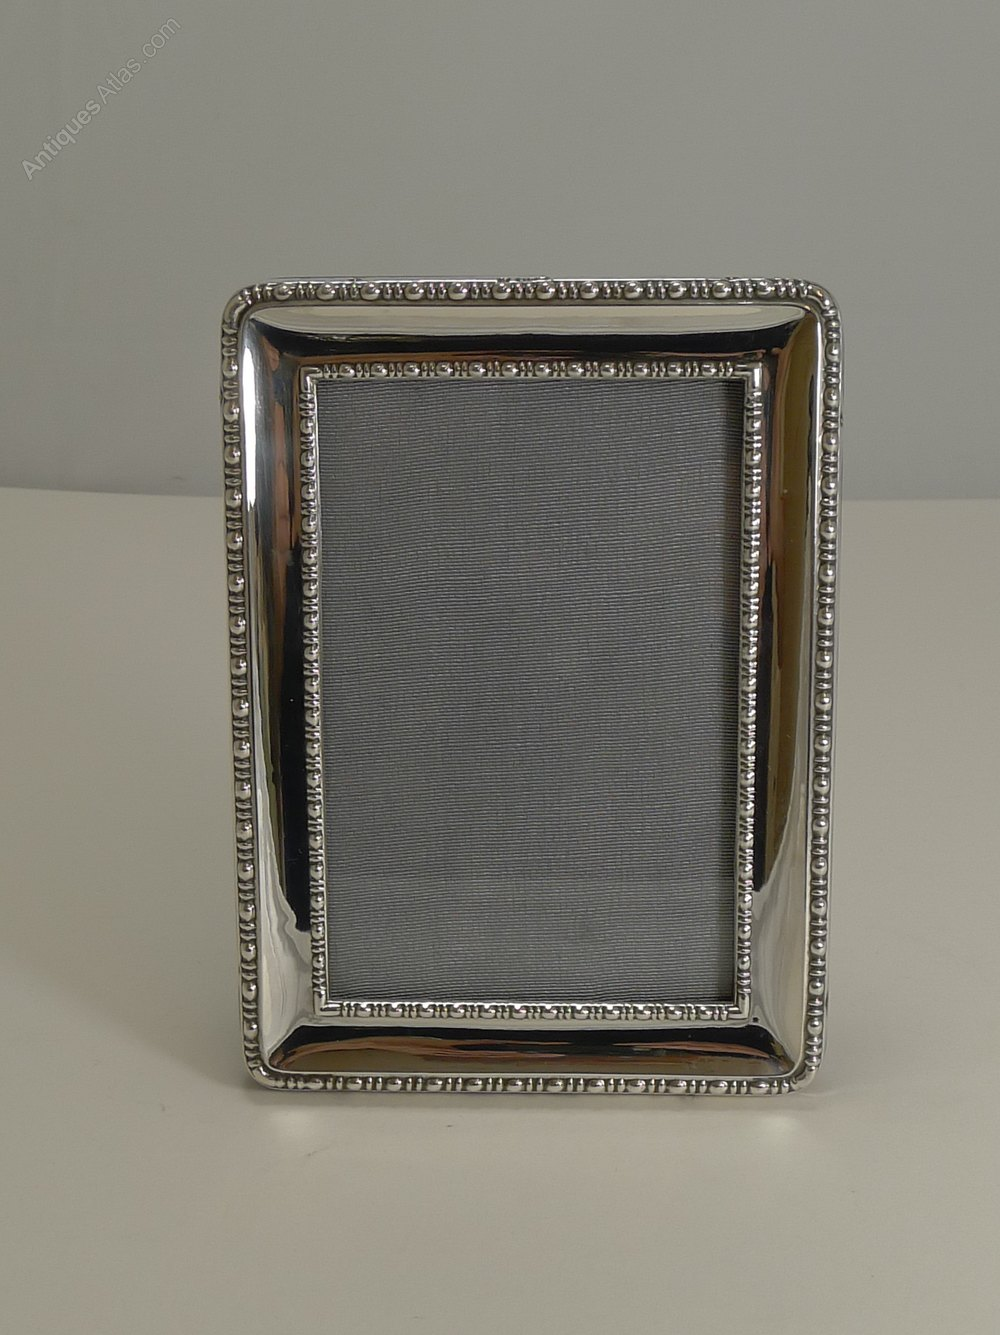 Antiques Atlas - Antique English Silver Photograph Frame - 1918